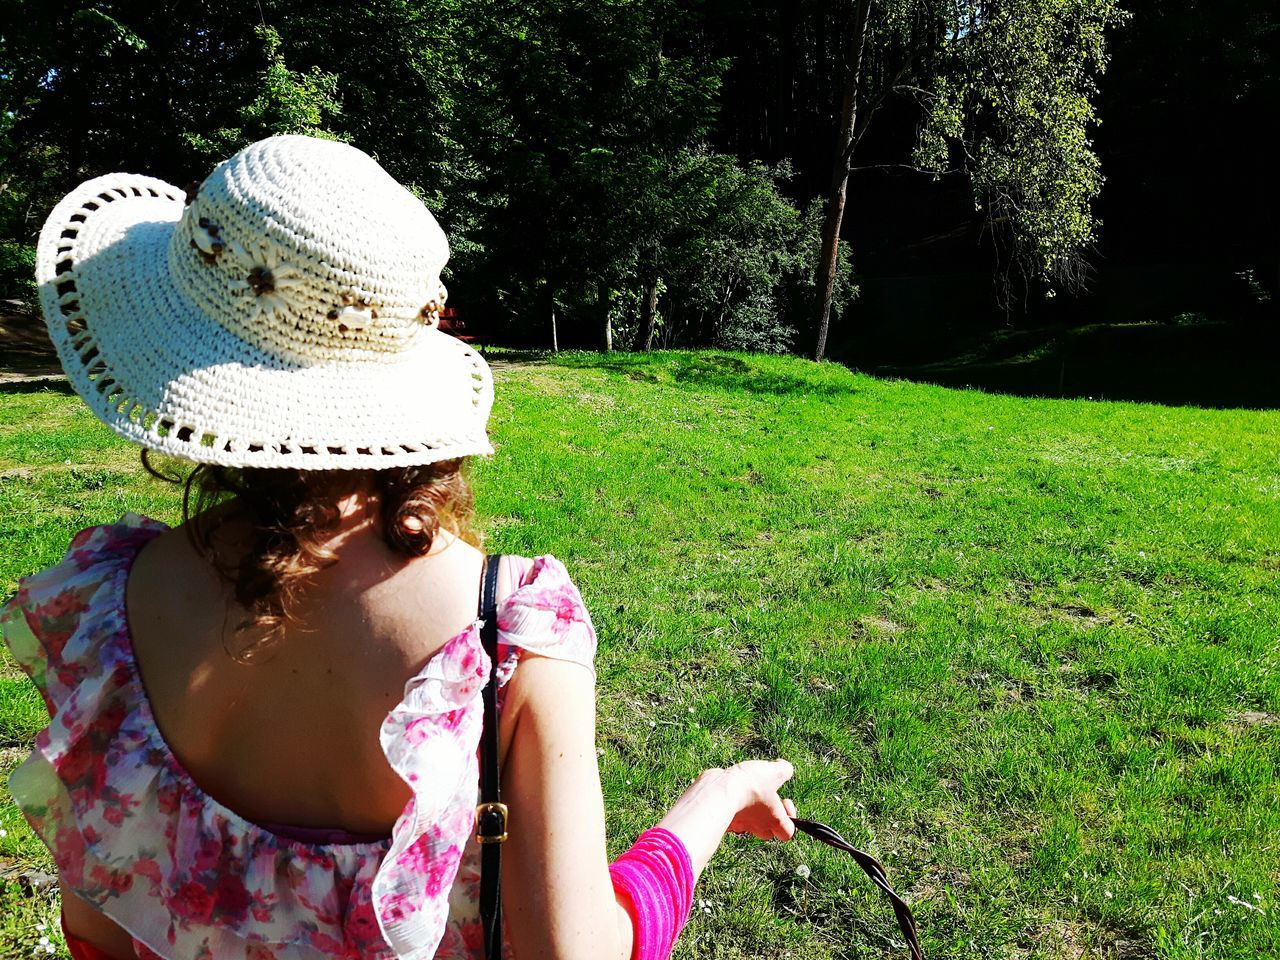 Picnic girl Hat Sun Hat One Person Grass Summer One Woman Only Outdoors Headshot One Young Woman Only Beauty Tree Water Growth Sunlight Freshness Real People Nature Day Grass Leisure Activity Tranquil Nature Scene Picnic Woman Back Weekend The Great Outdoors - 2017 EyeEm Awards